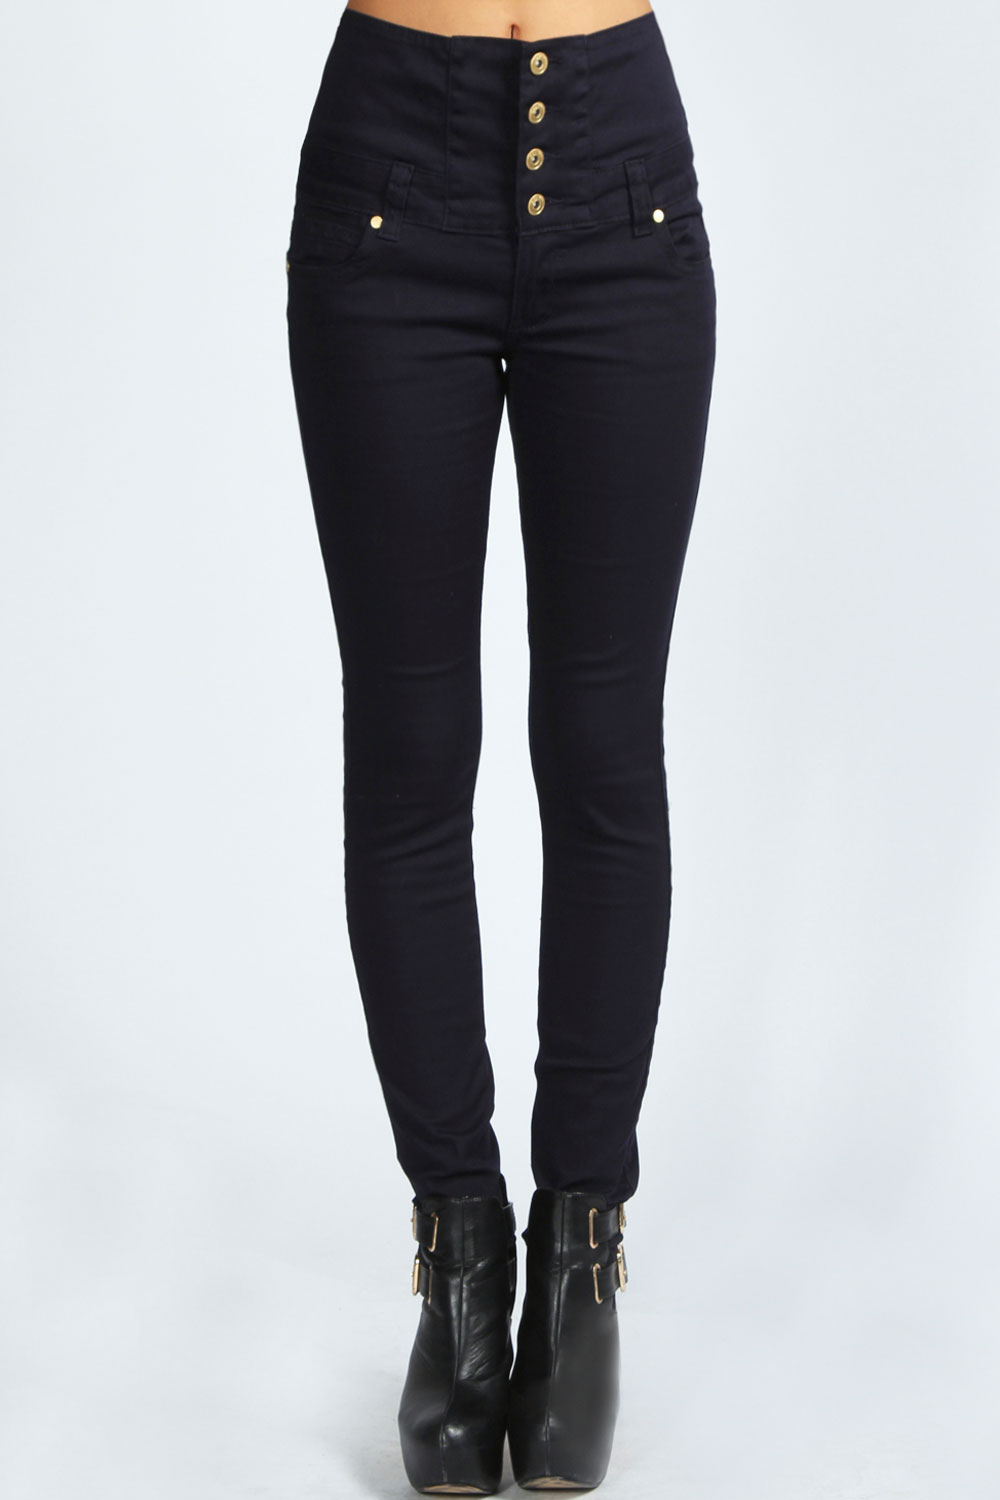 Boohoo Womens Ladies Sandra High Waisted Coloured Skinny Jeans | eBay